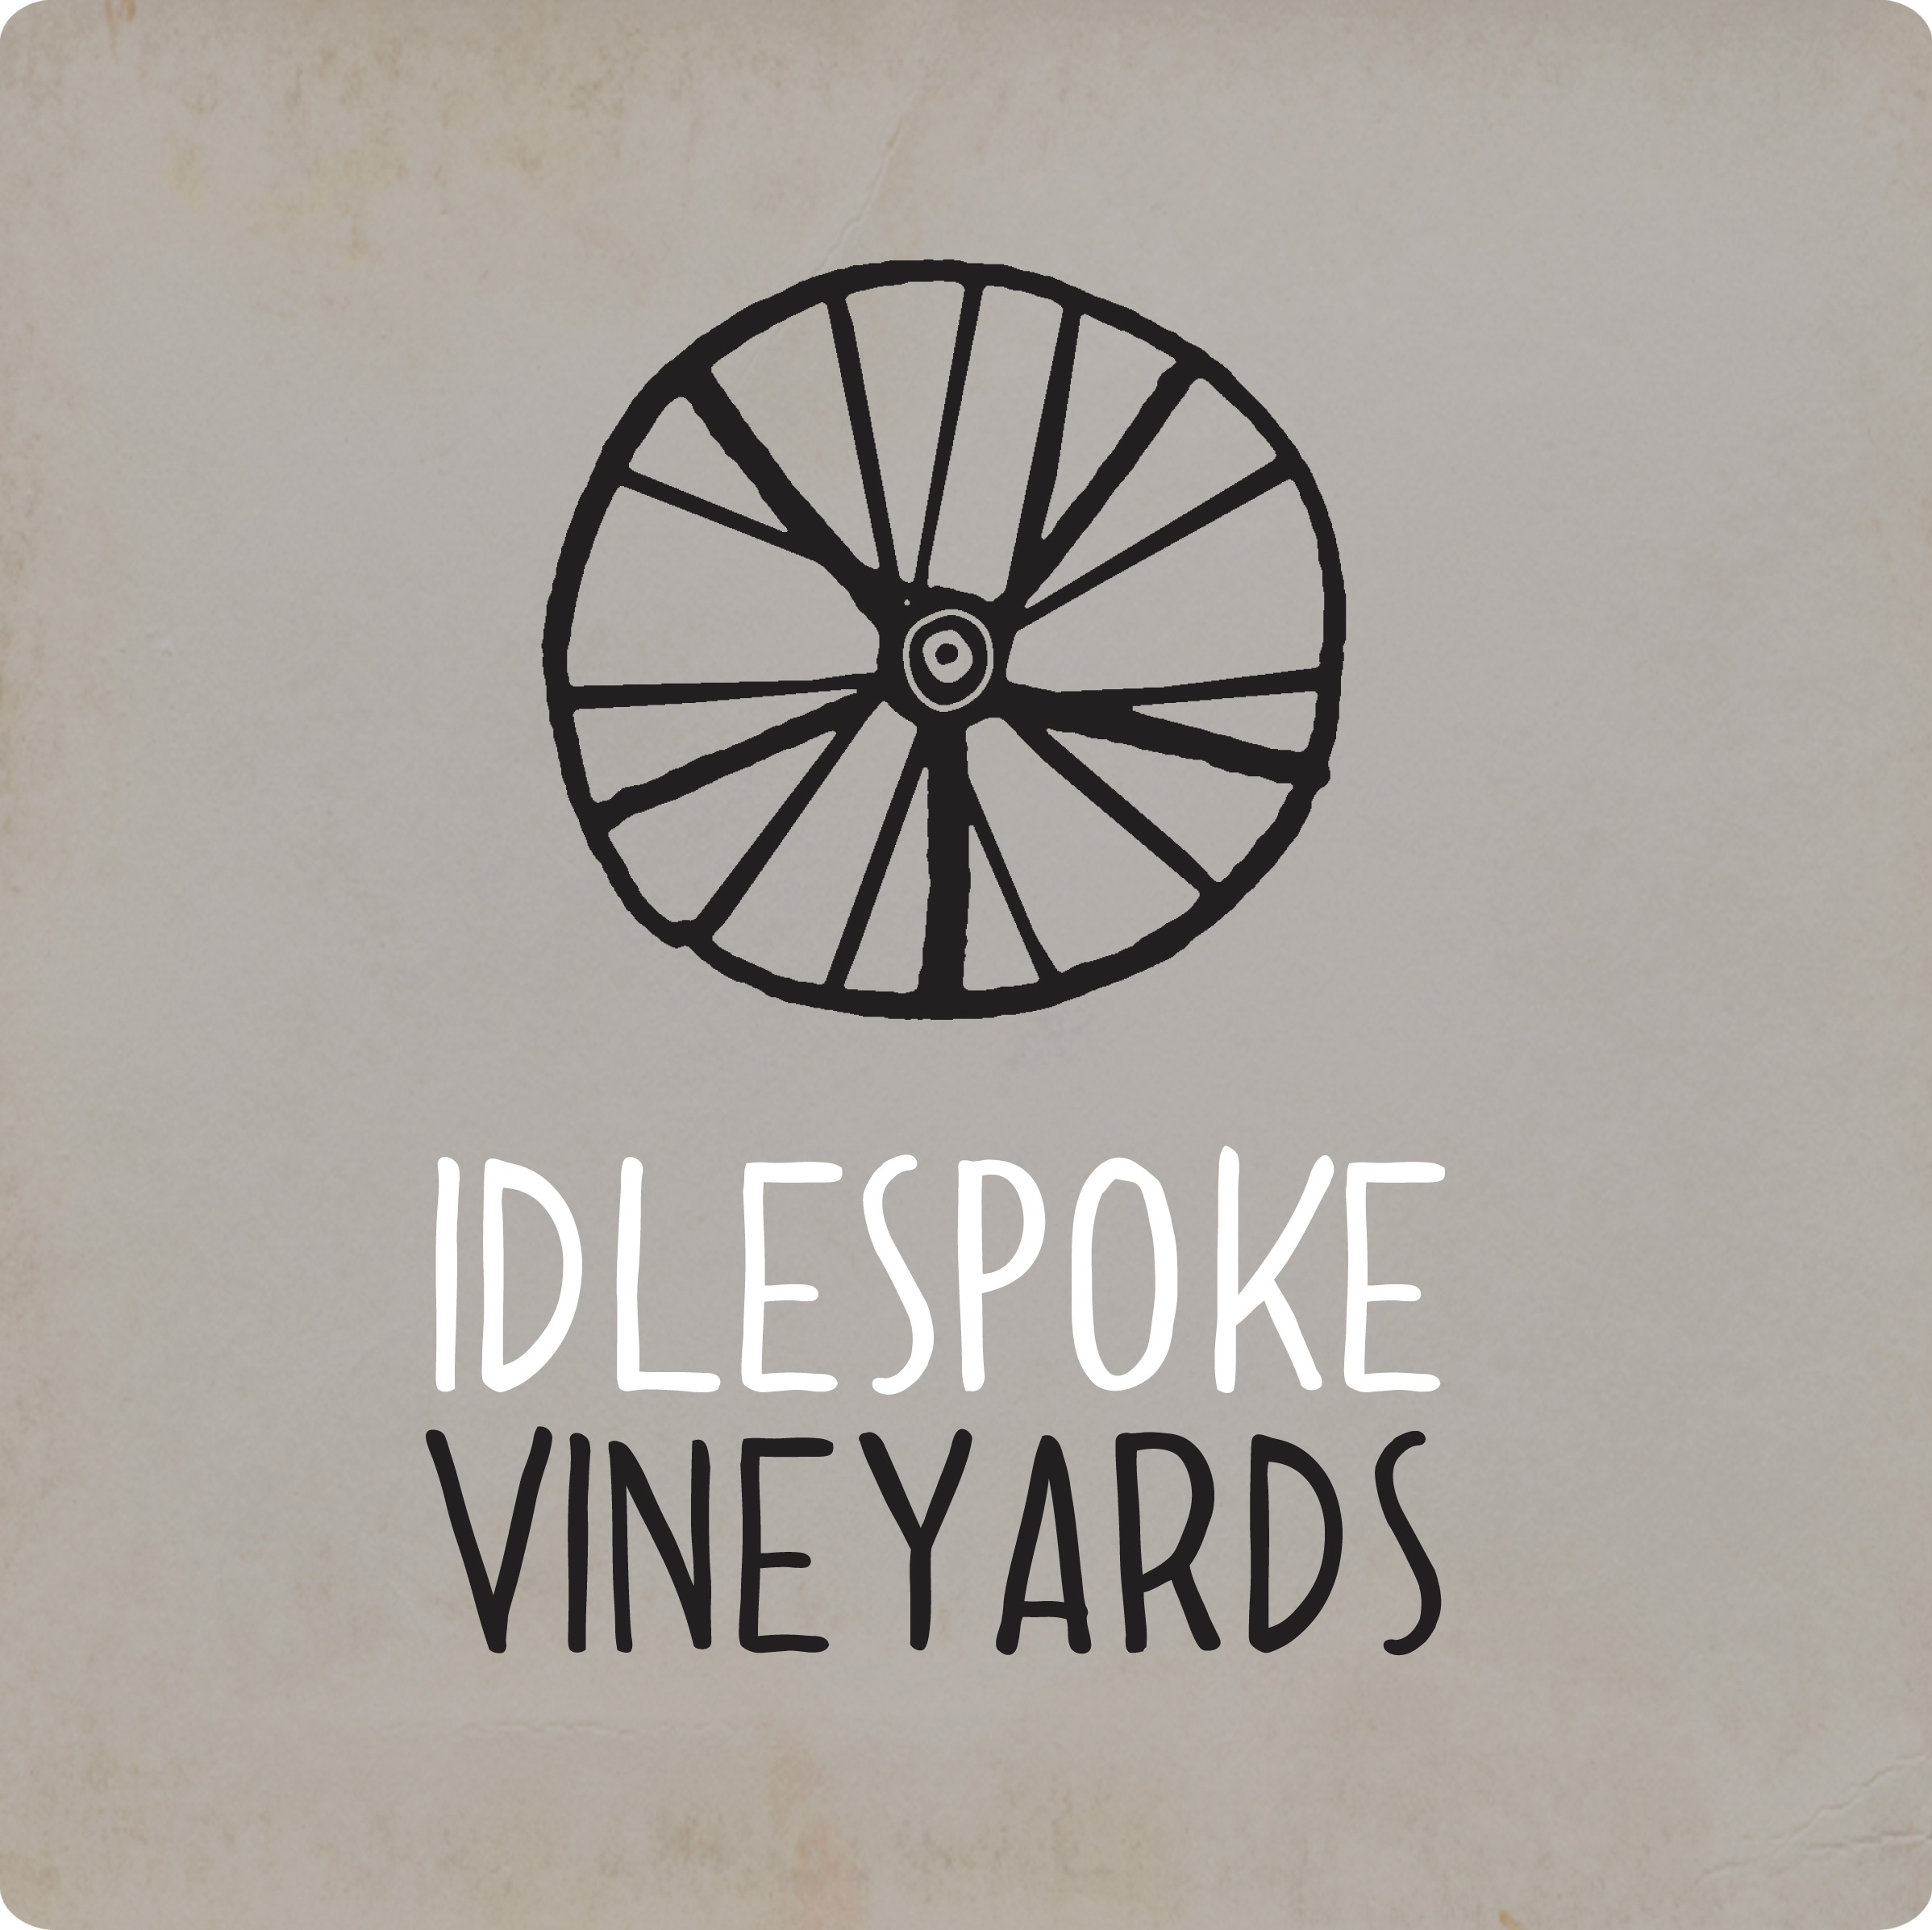 Idlespoke Vineyards - Healdsburg, California